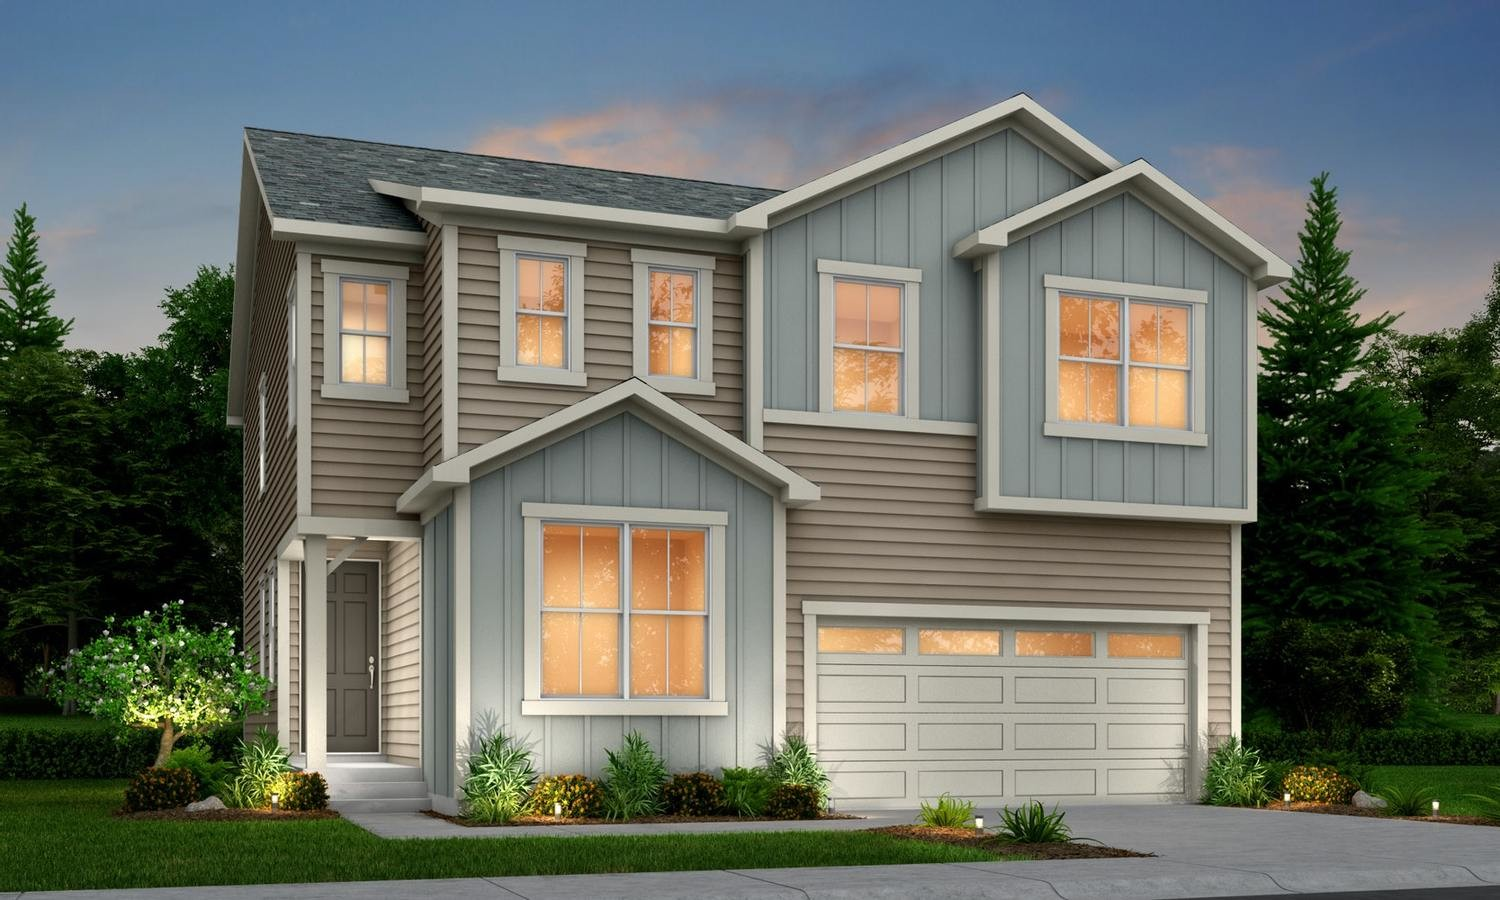 Move In Ready New Home In The Trails at Aspen Ridge Community